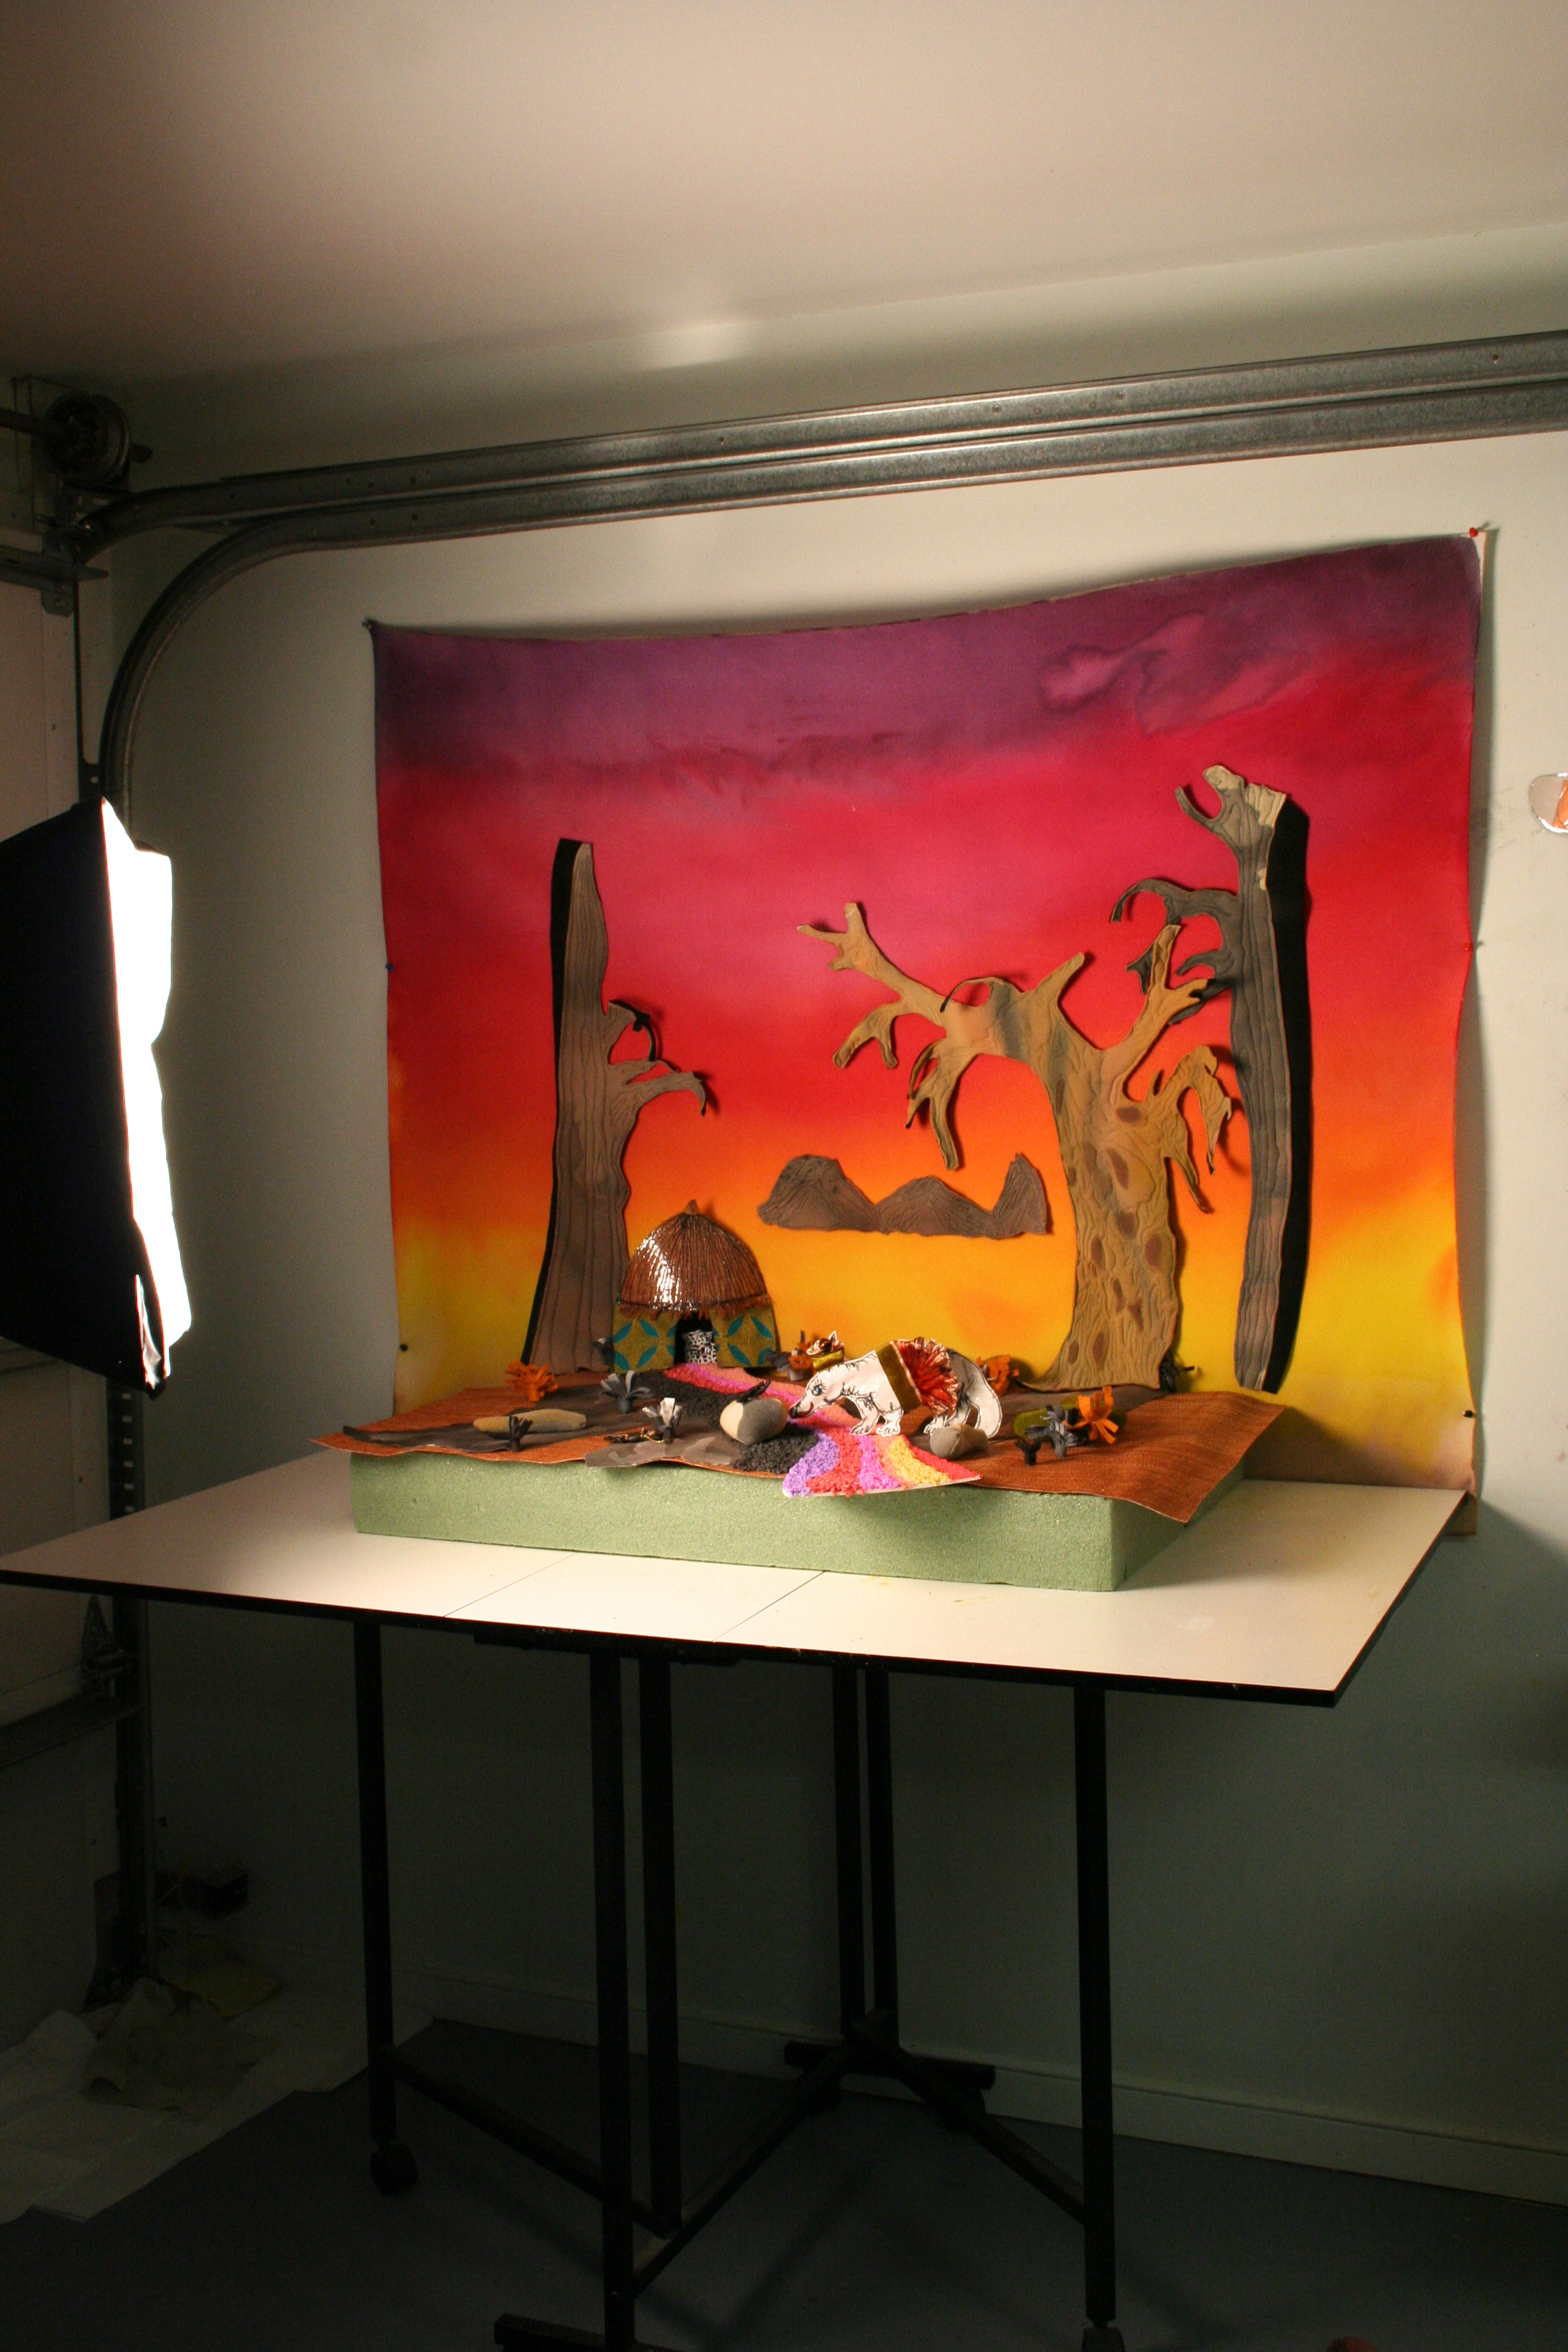 Setting up in the studio to see how it looks...